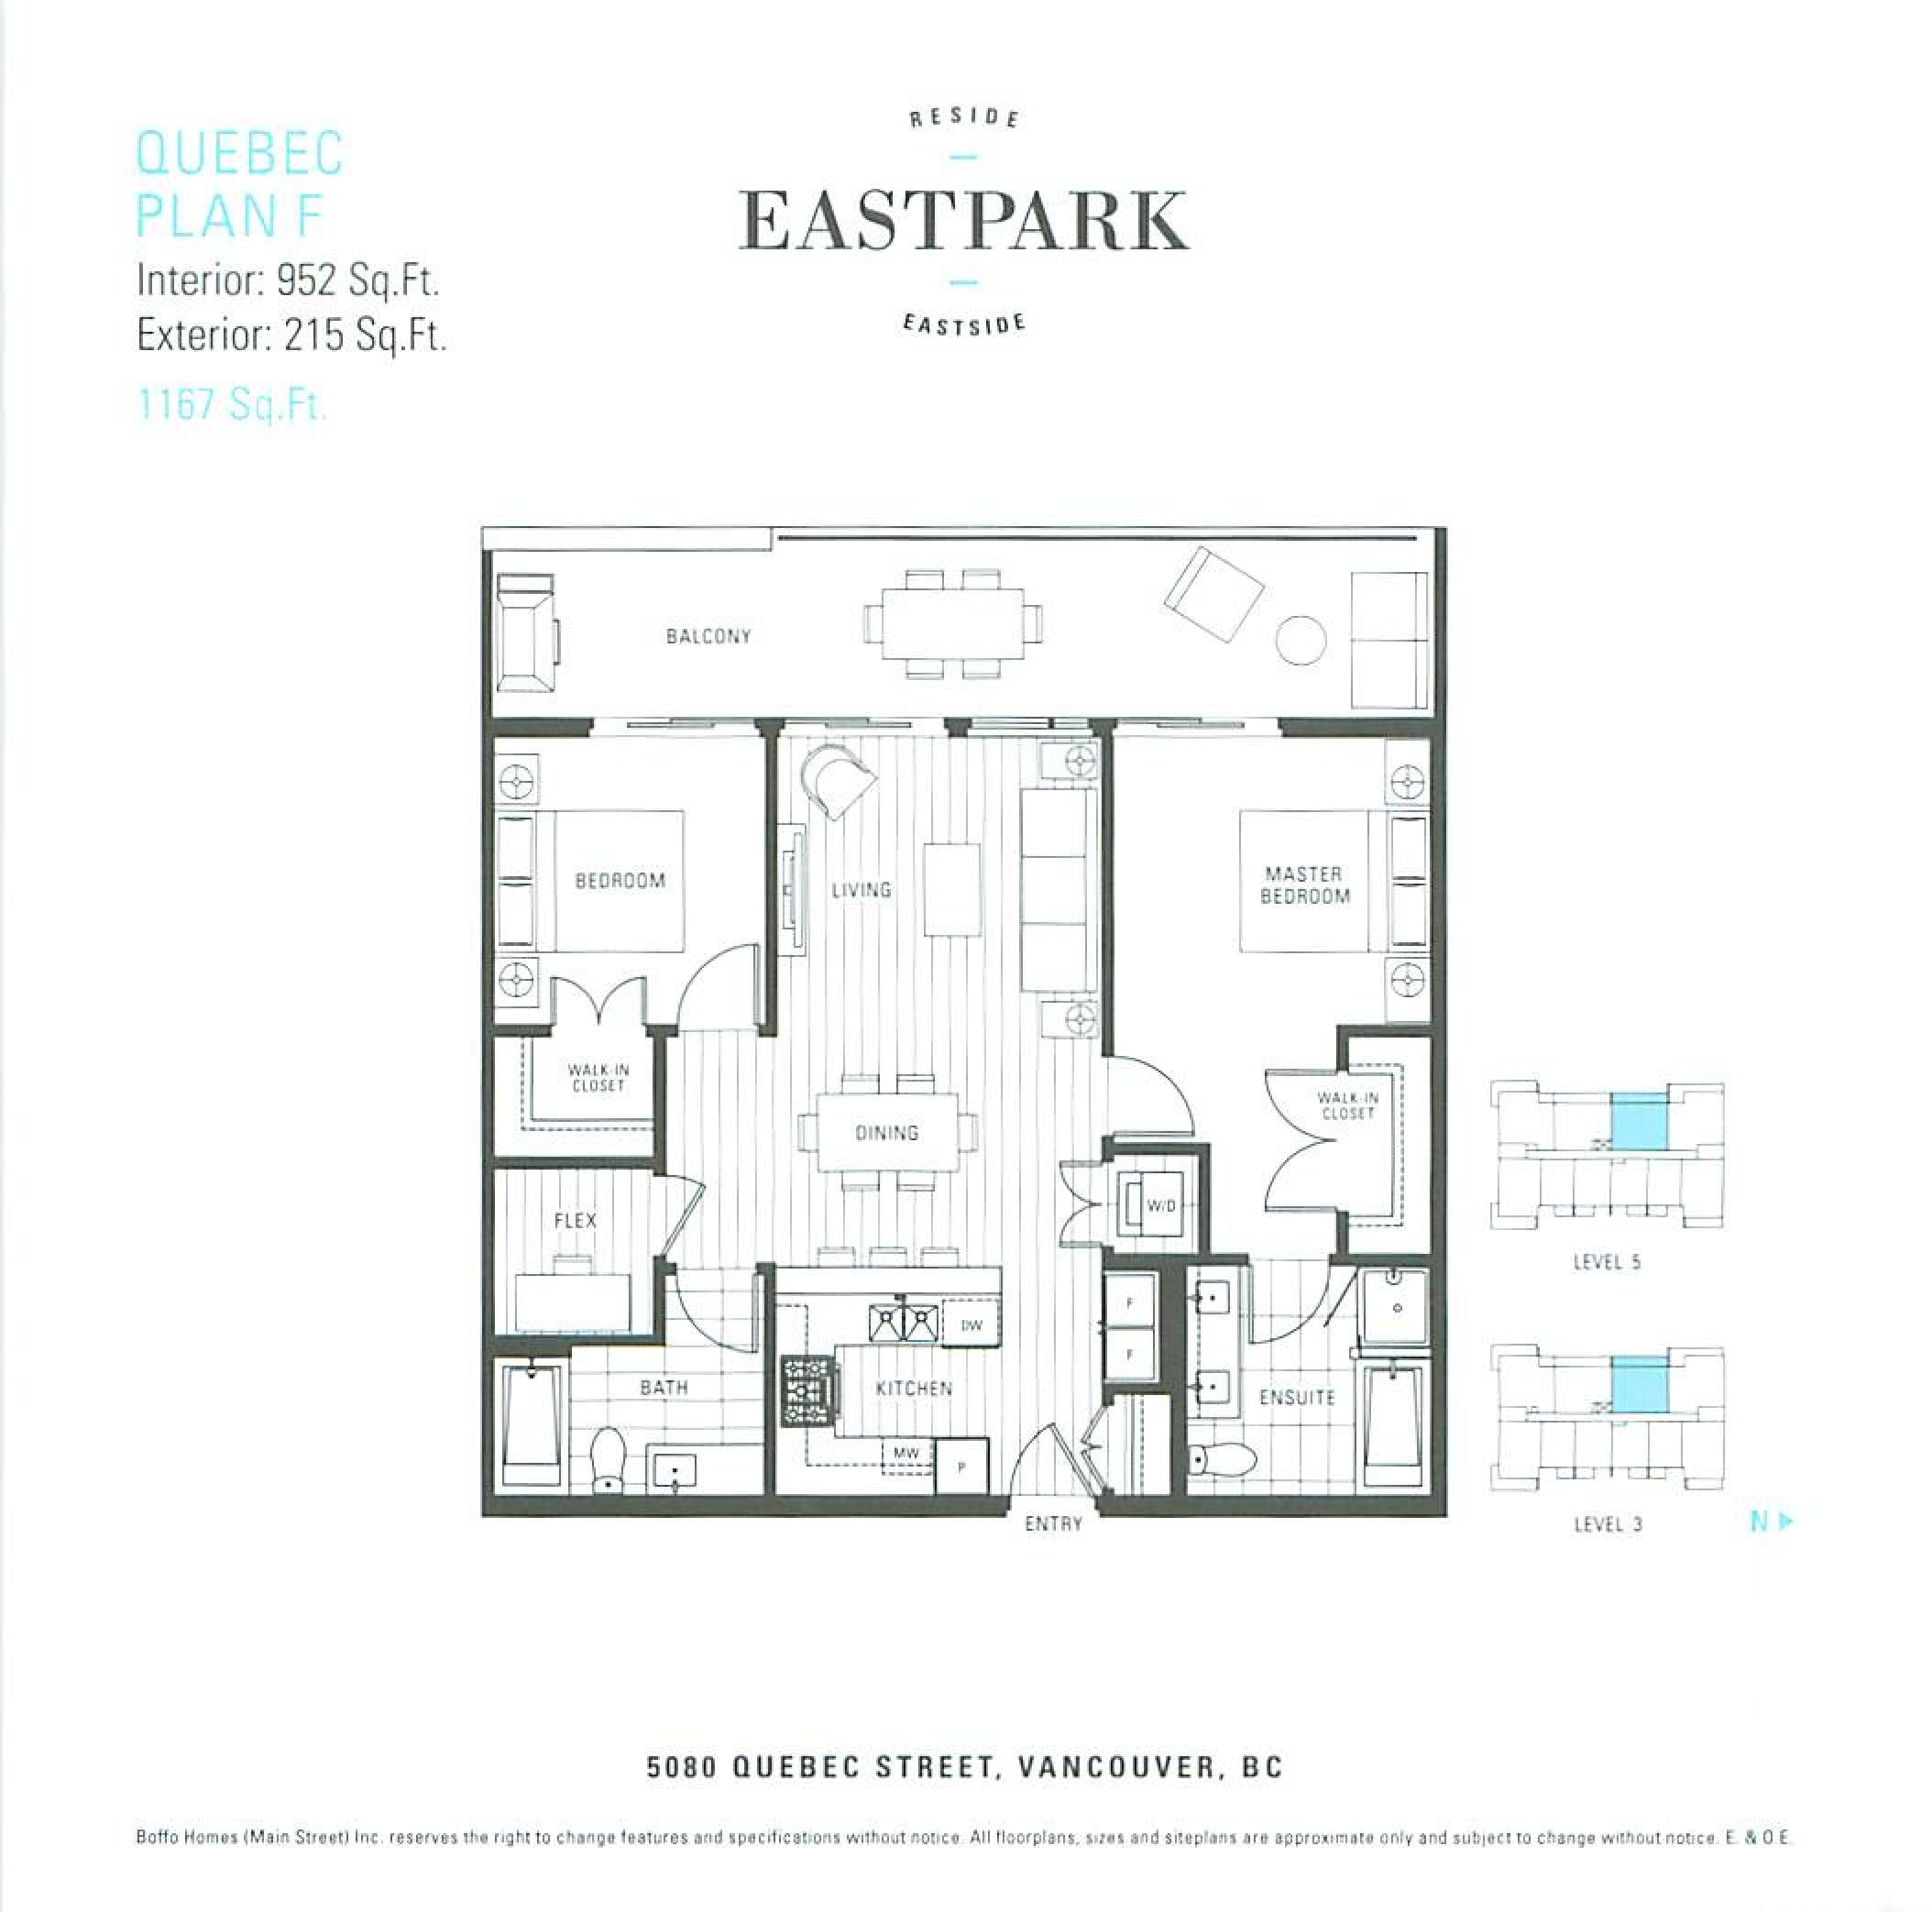 EastPark Quebec Smaller Floor Plans Mike Stewart-page-007